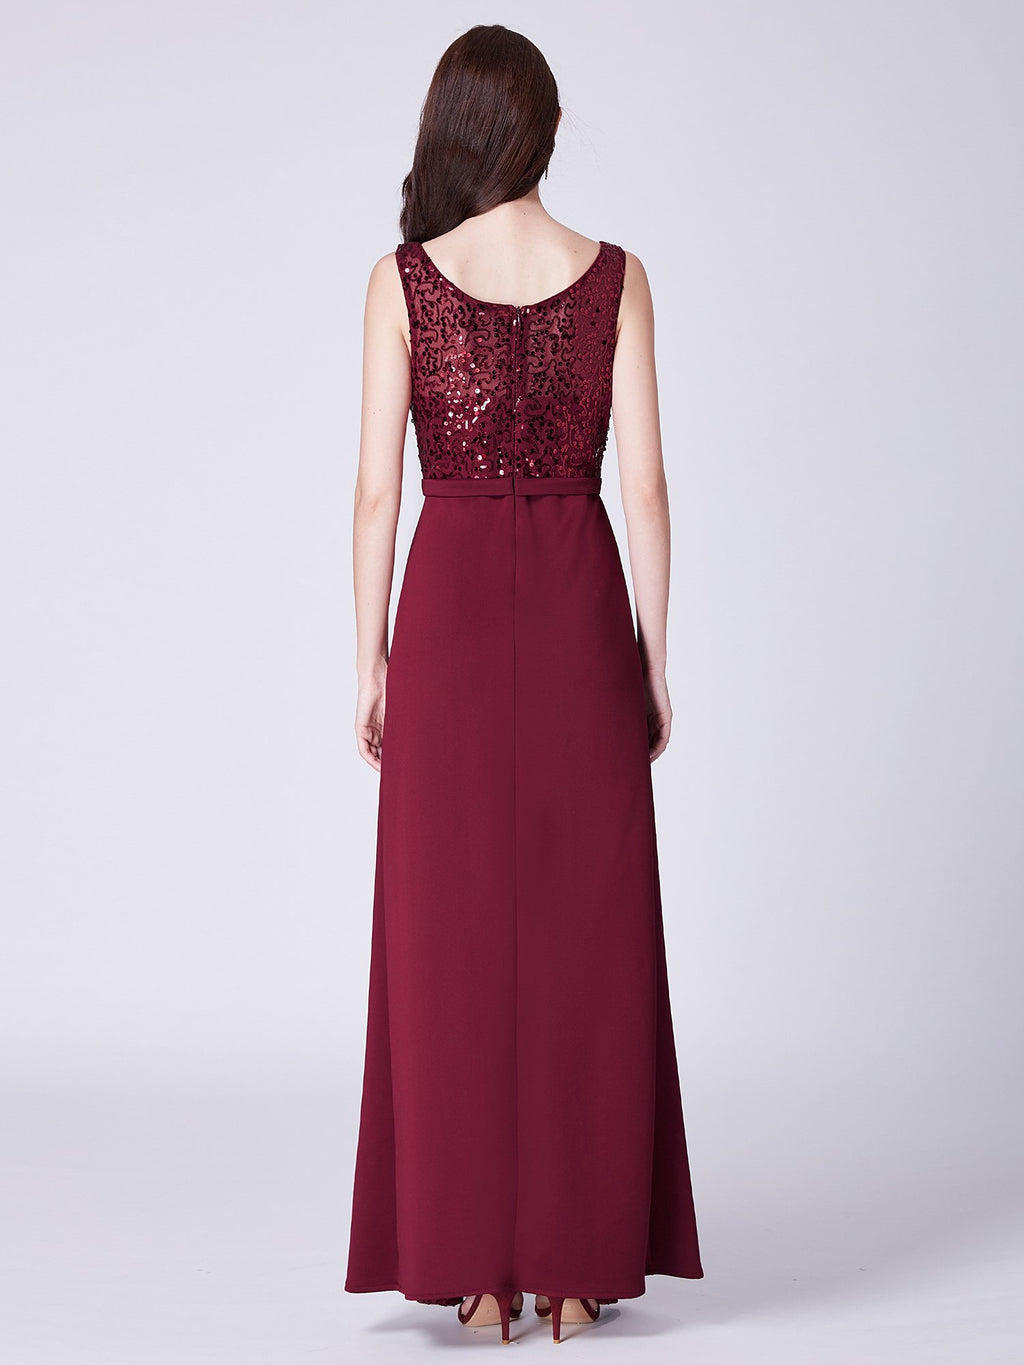 Sequins Formal Maxi Gown Burgundy